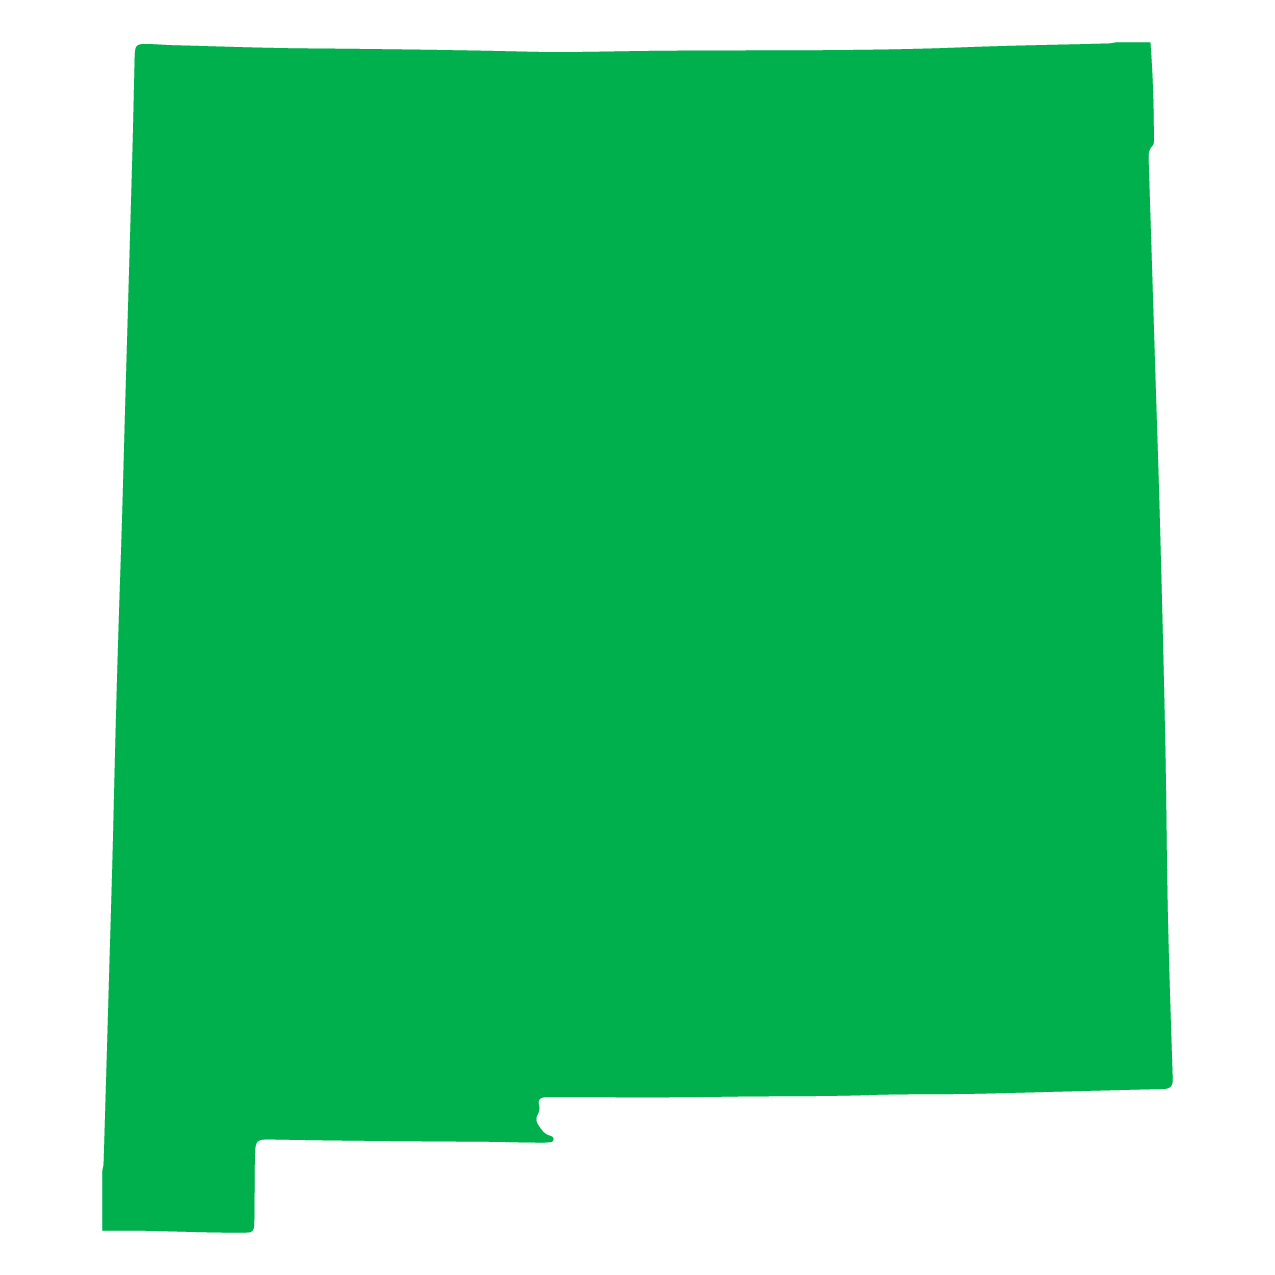 States_New Mexico.png